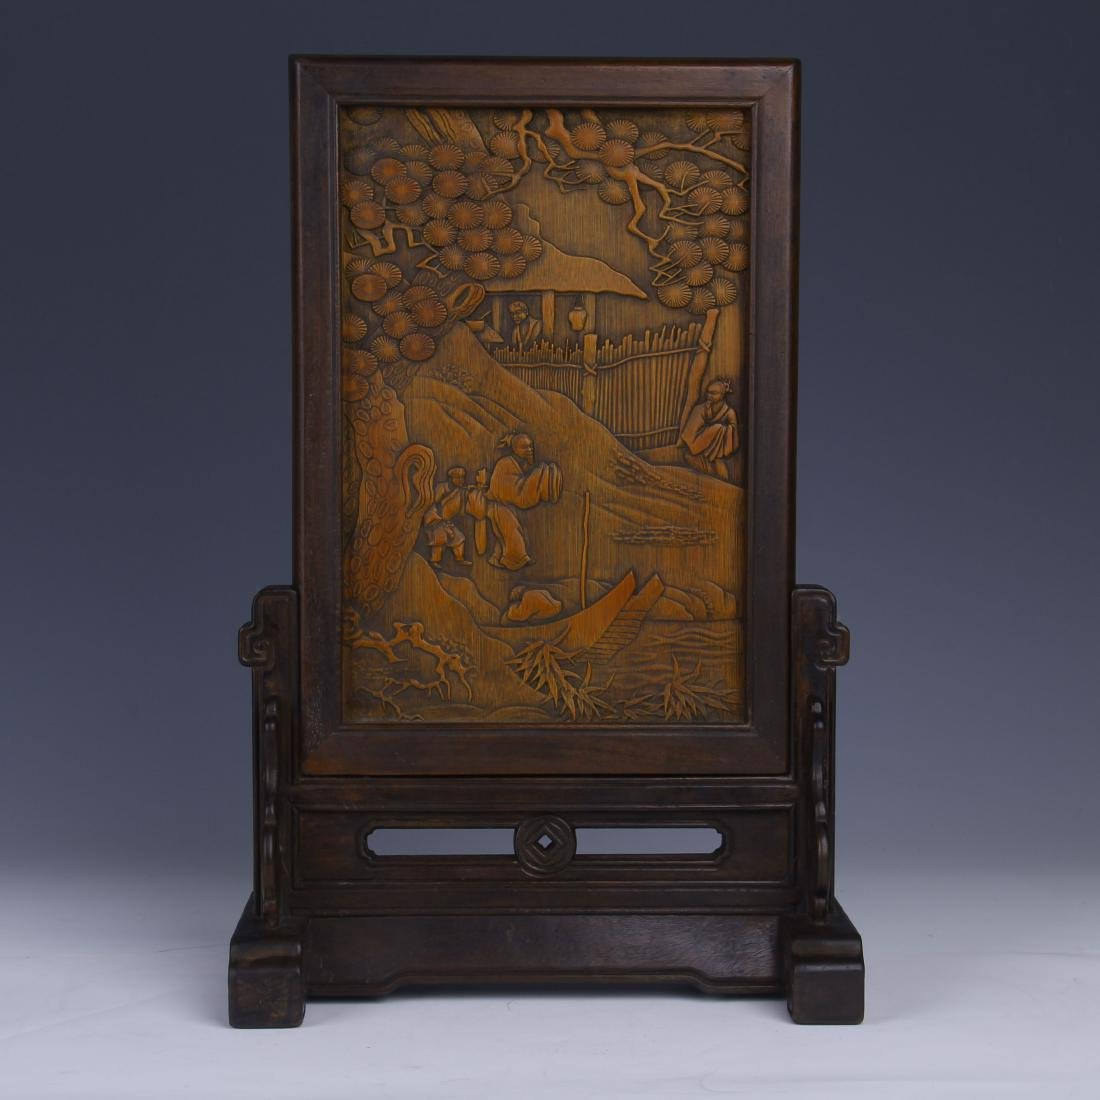 BAMBOO INLAID HUANGYANG WOOD TABLE SCREEN